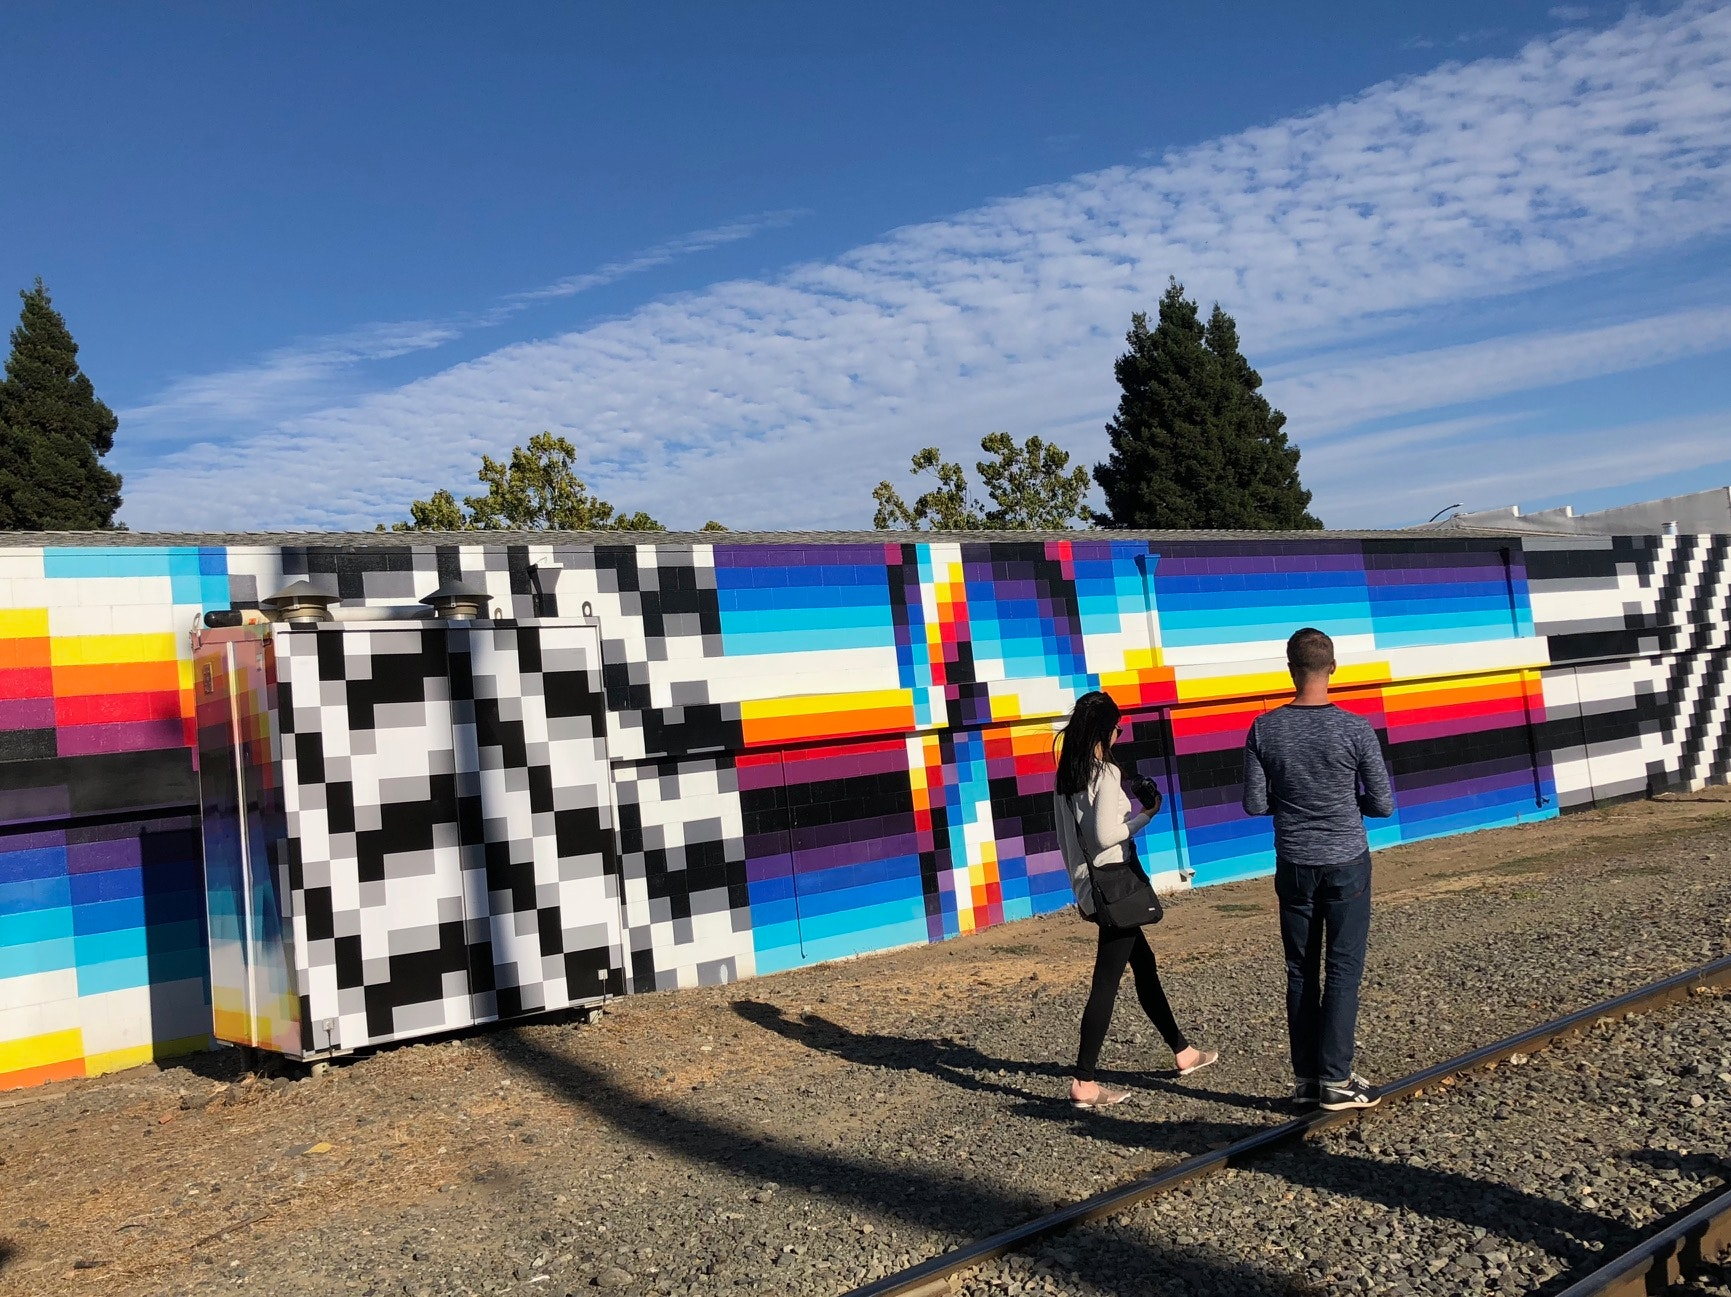 See some of Napa's latest street art with Paper Napan Walkabouts before sipping Cabernet Sauvignon at a local winery.